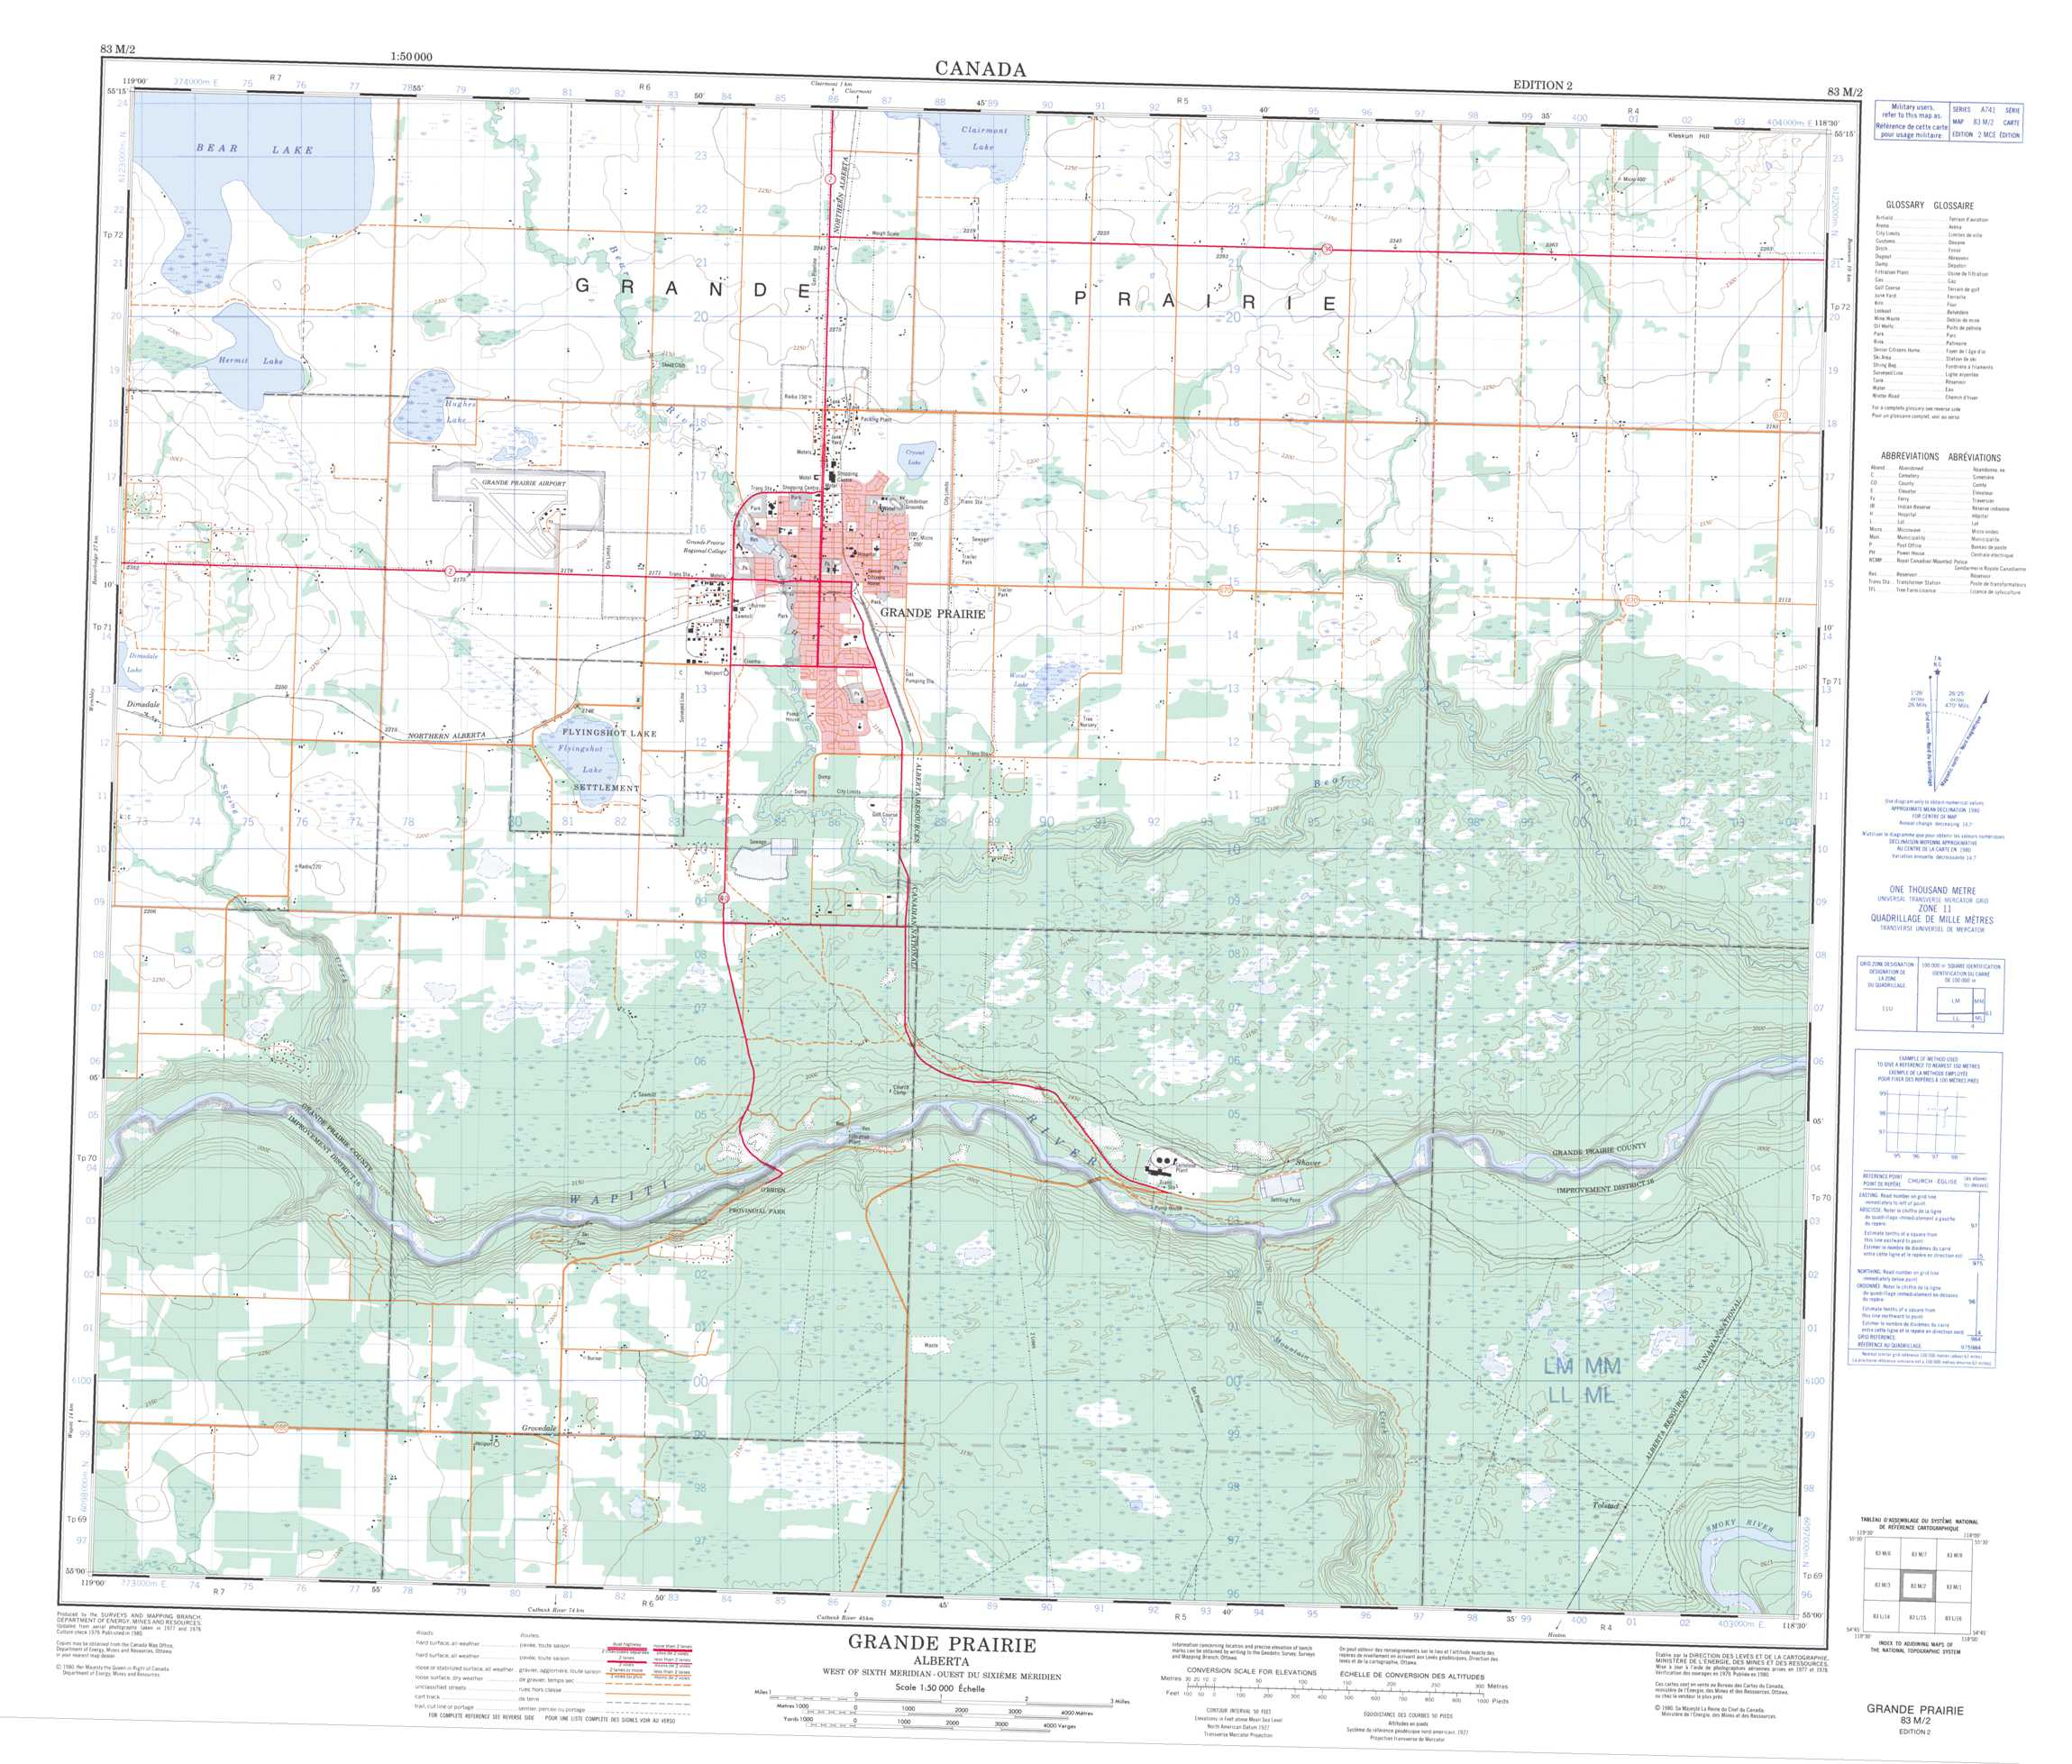 Buy Grande Prairie Topographic Map NTS Sheet 083M02 at 150000 Scale